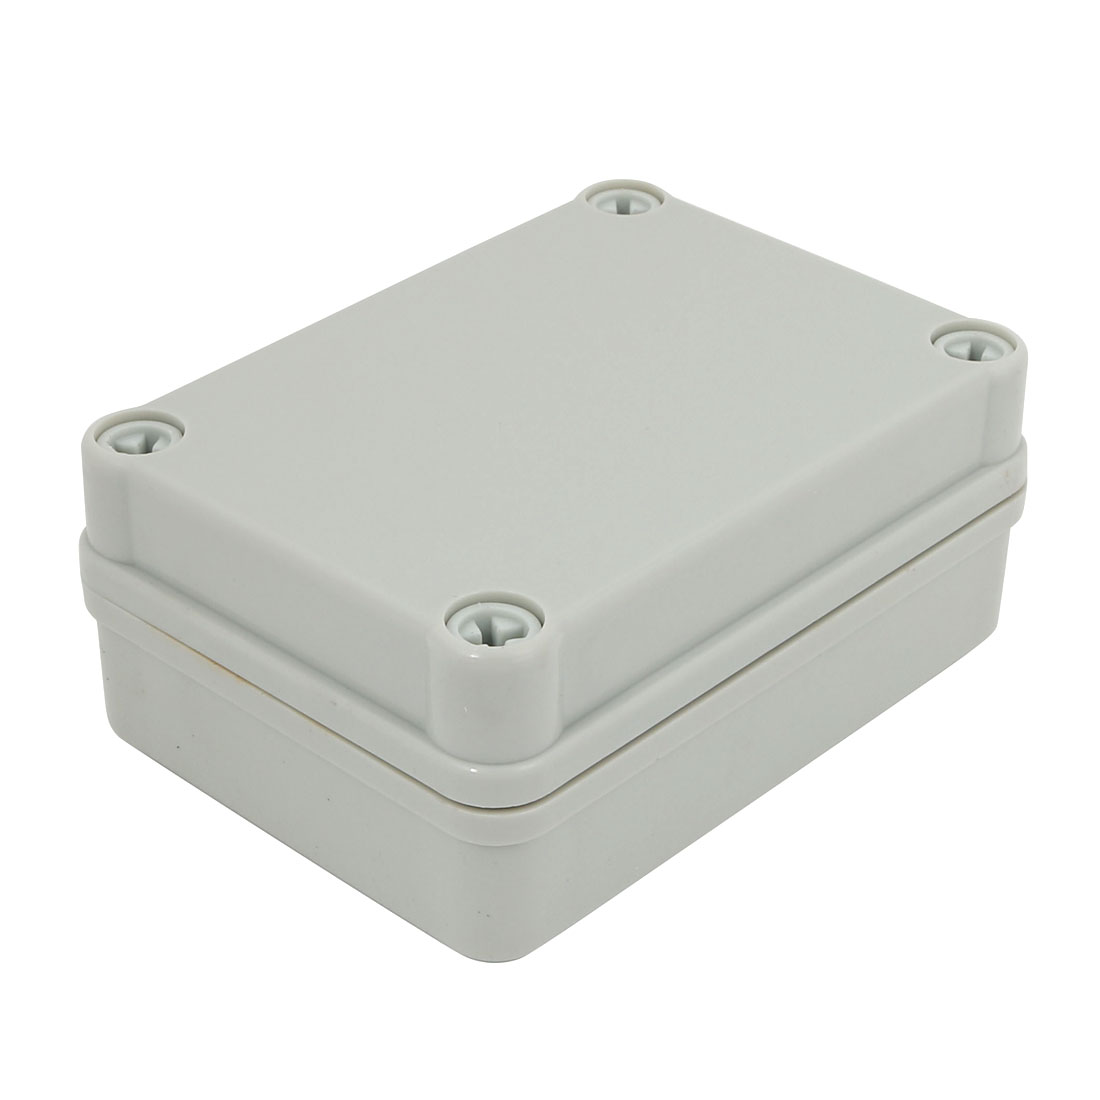 110mm x 80mm x 45mm Electronic ABS Plastic DIY Junction Electrical Box Case Gray